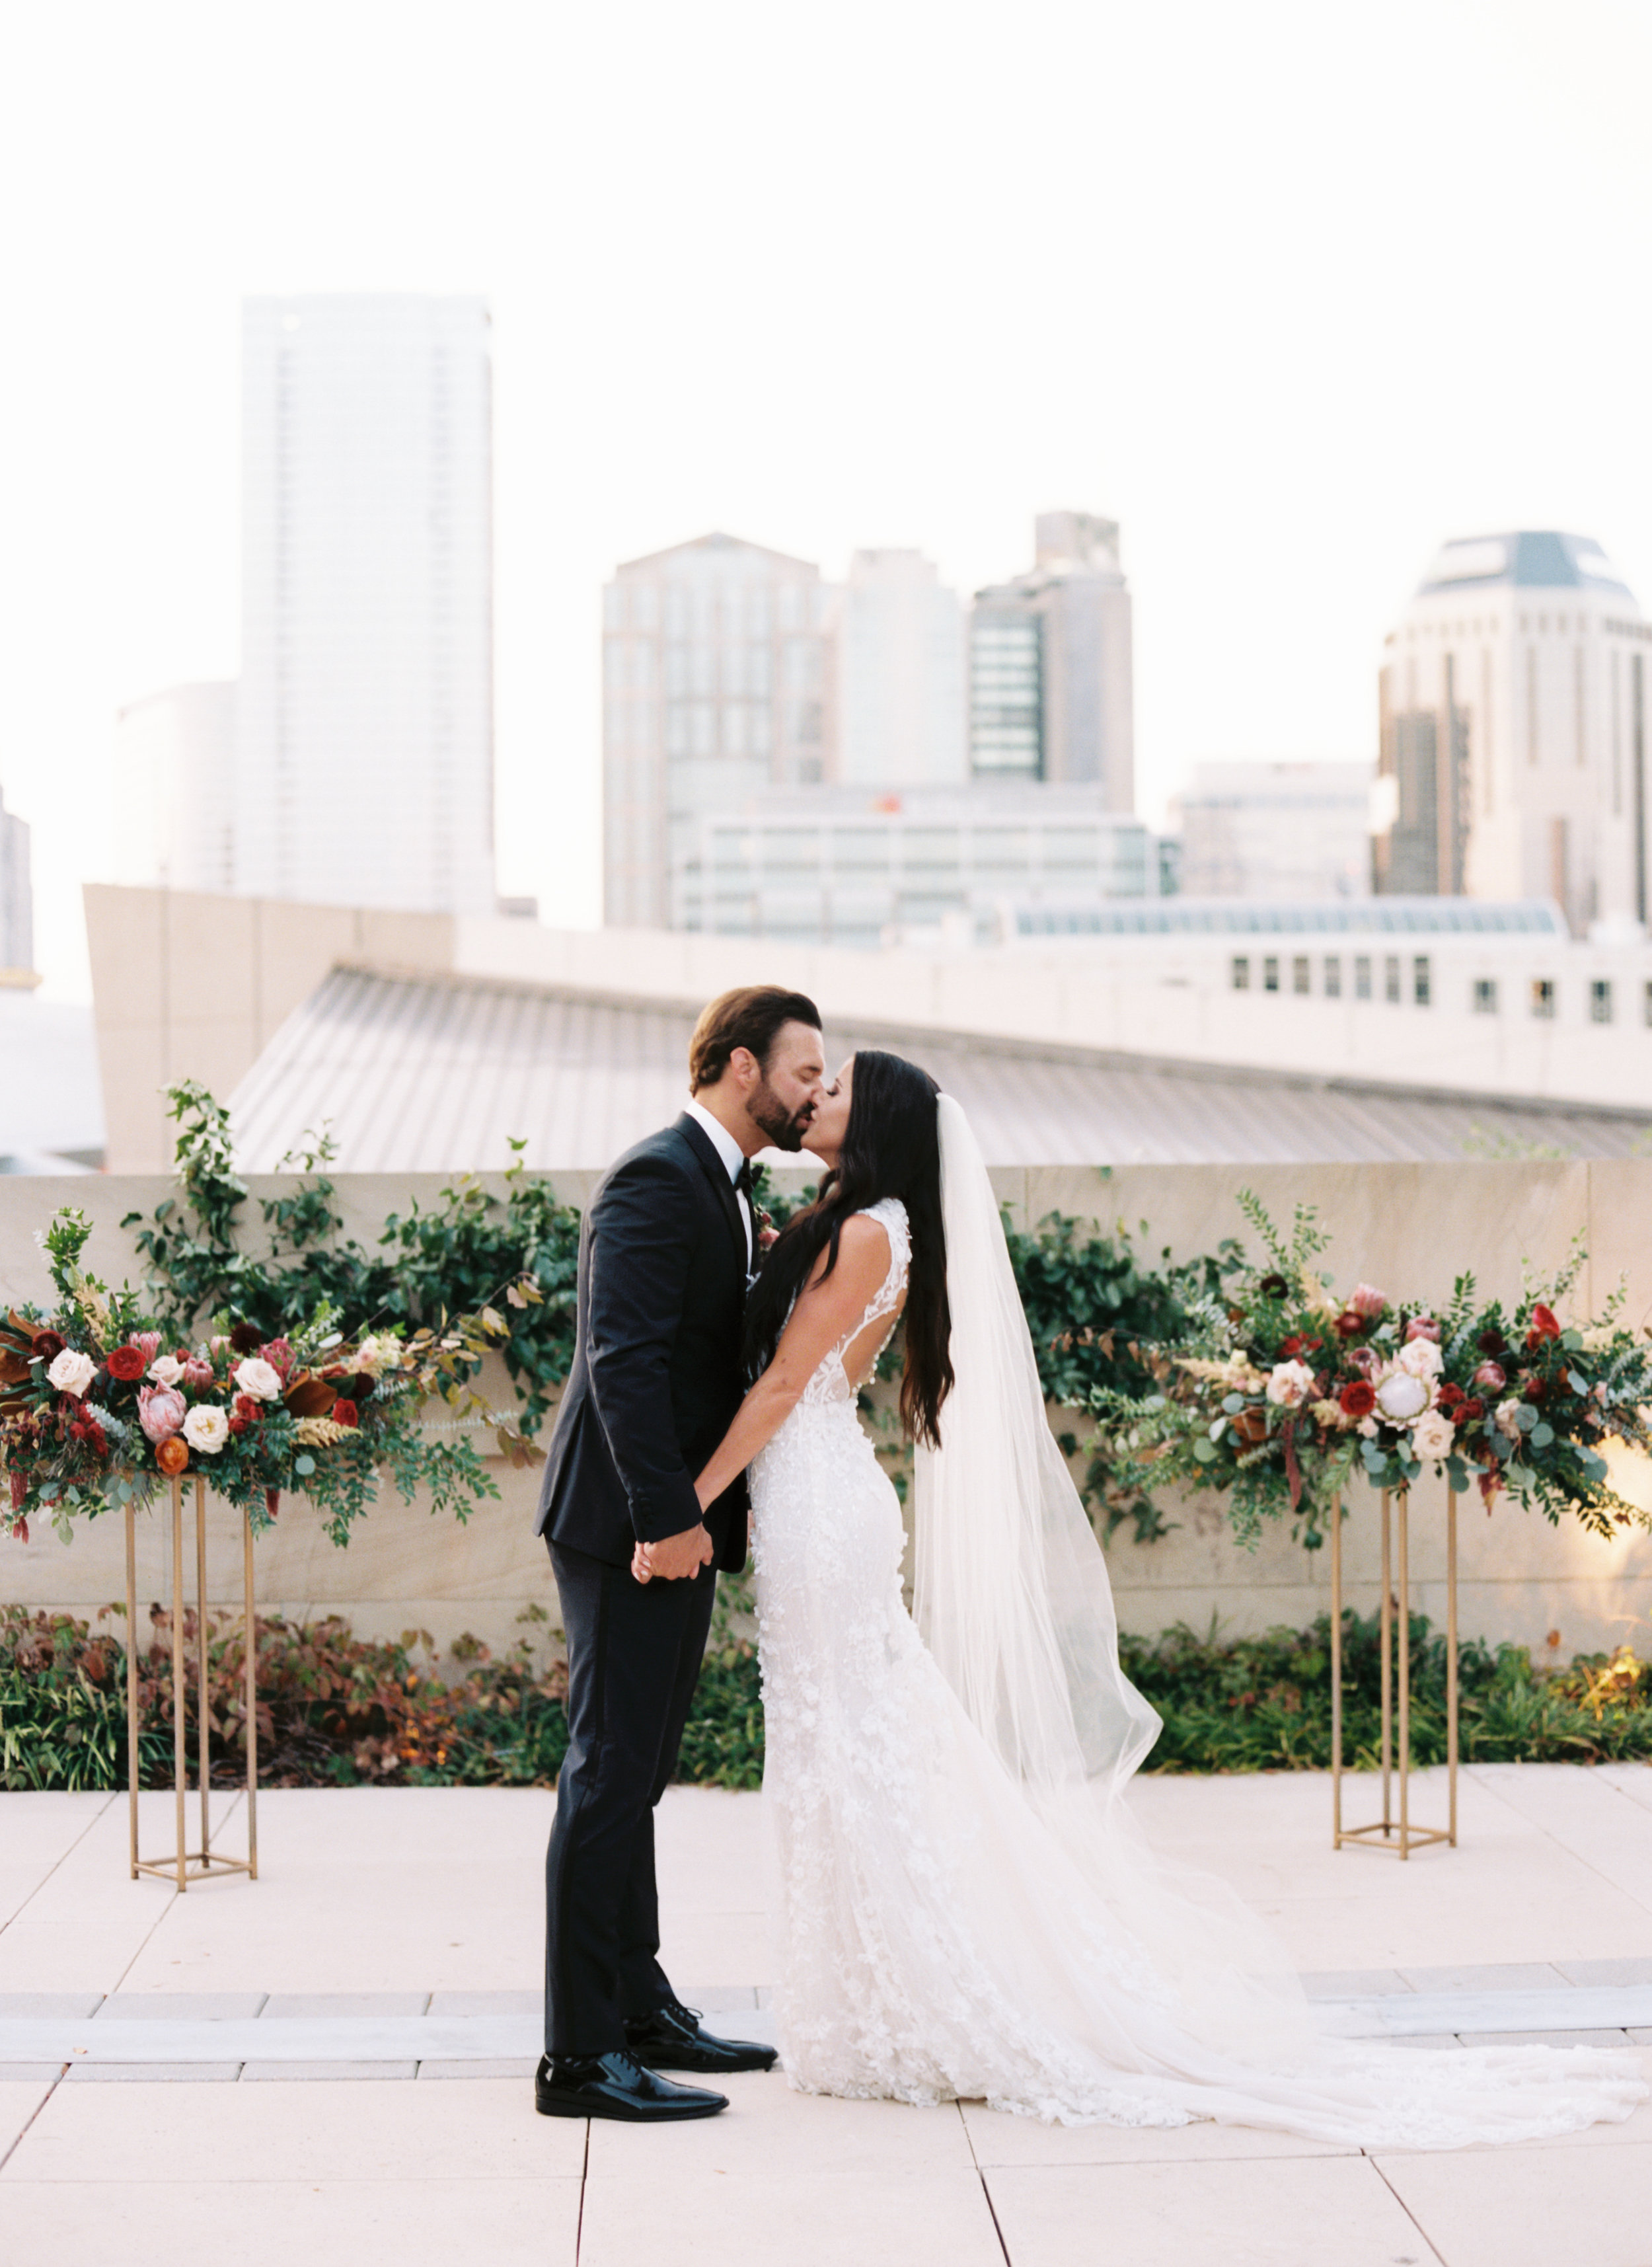 Blush and marsala wedding flowers with protea, ranunculus, and lots of greenery and texture // Country Music Hall of Fame Wedding, Nashville